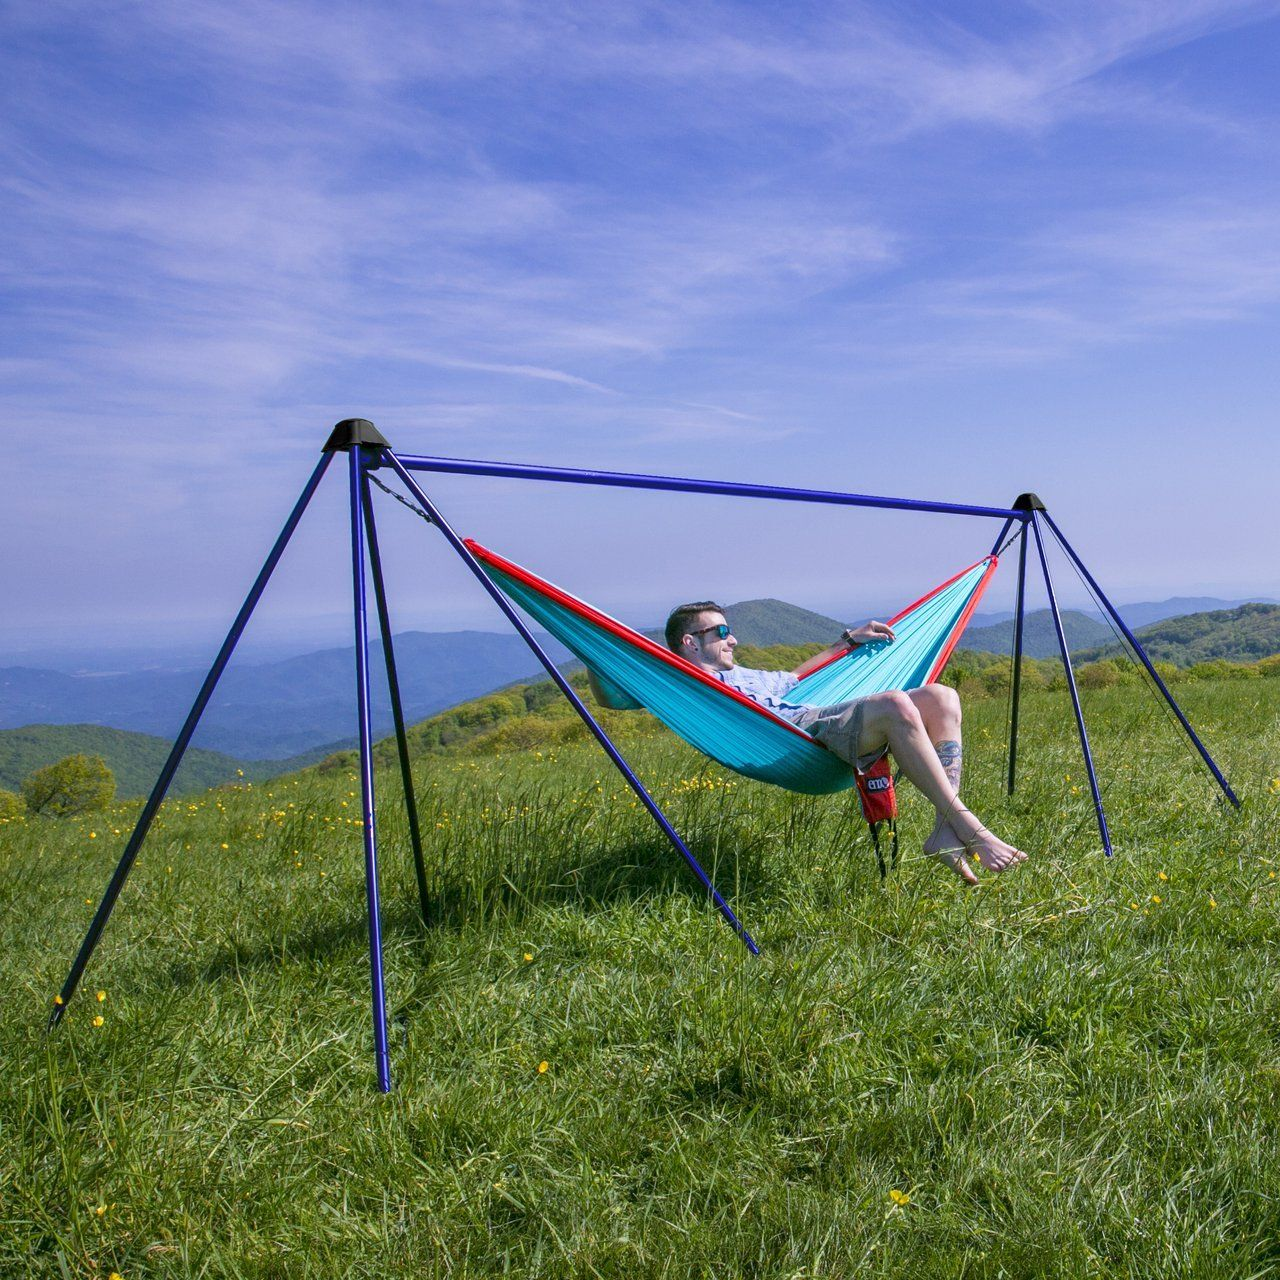 Portable hammock stand - Nomad Portable Hammock Stand